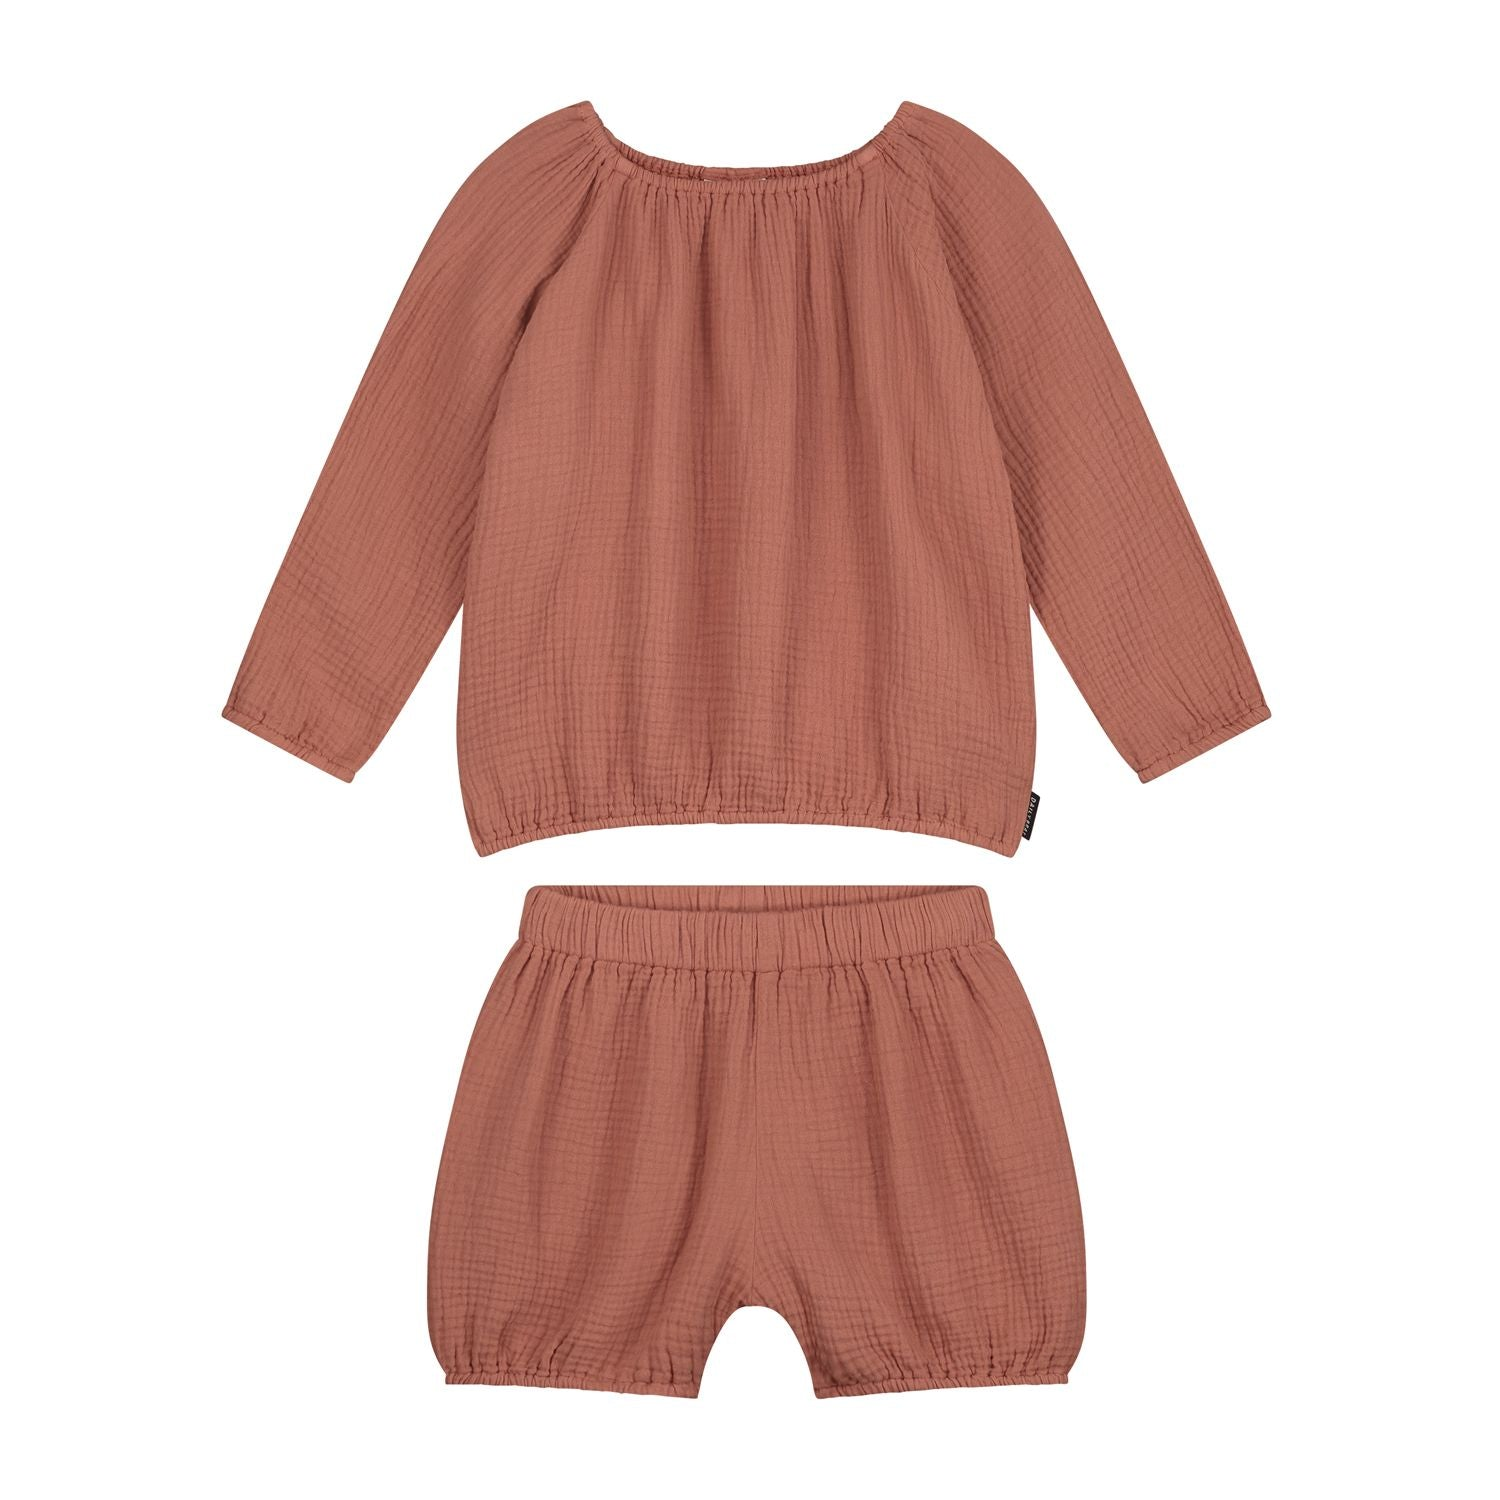 Daily Brat comfy set, summer cinnamon